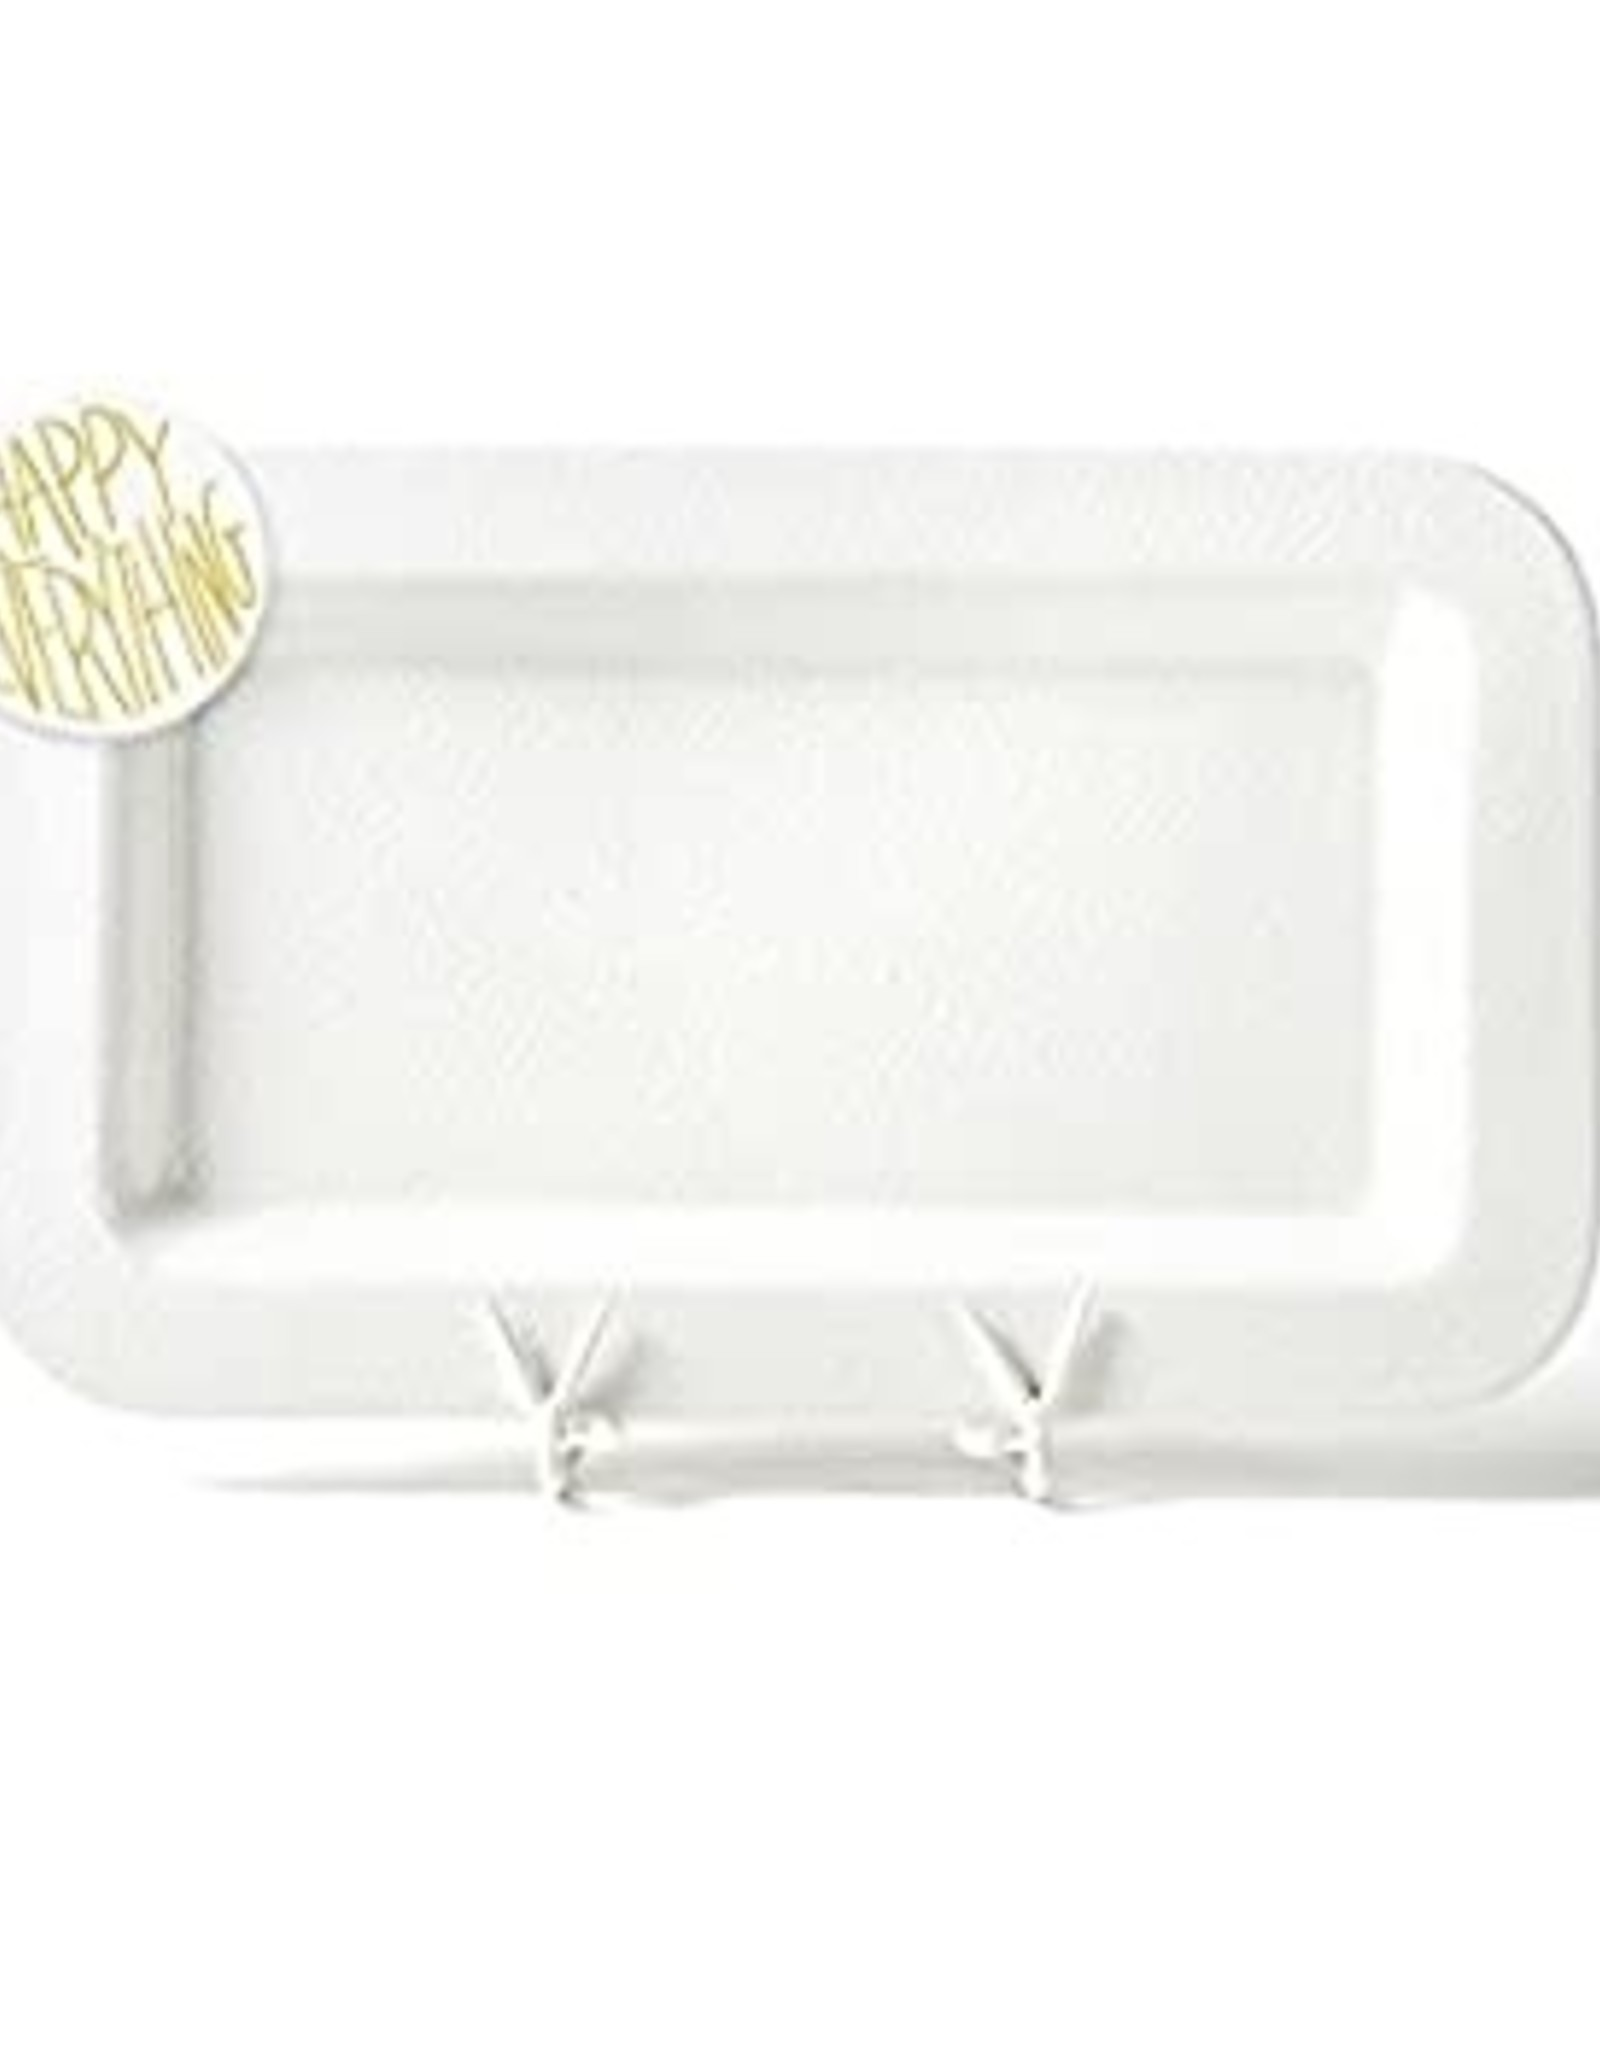 Coton Colors Happy Everything Mini Platter White Small Dot with HE Attachment